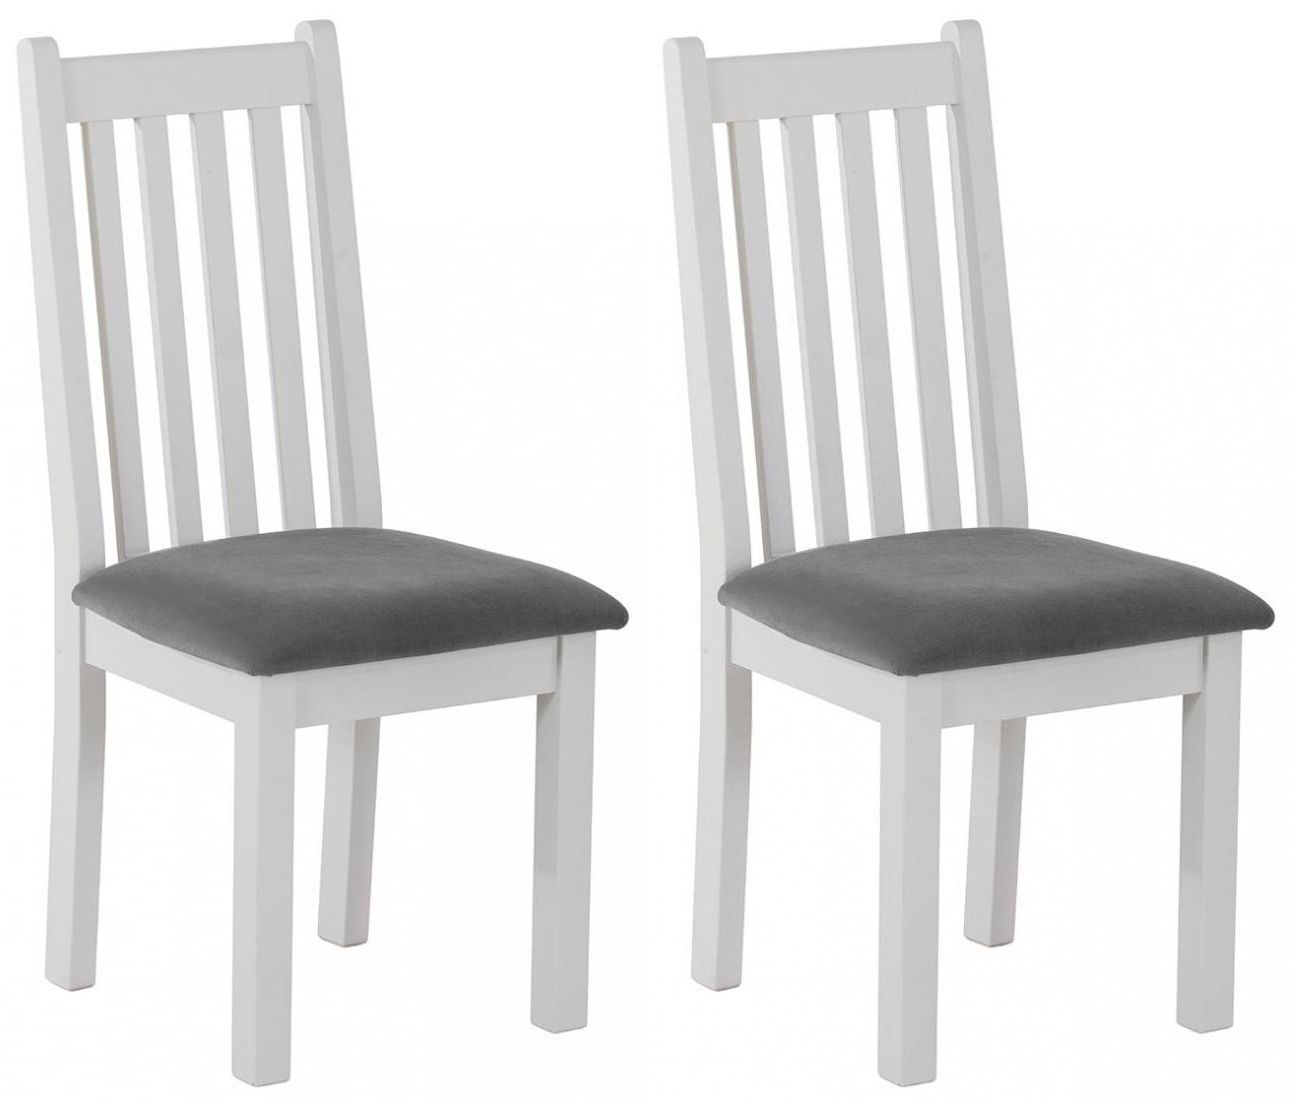 Rosa Painted Slatted Dining Chair with Plush Asphalt Fabric Seat (Pair)